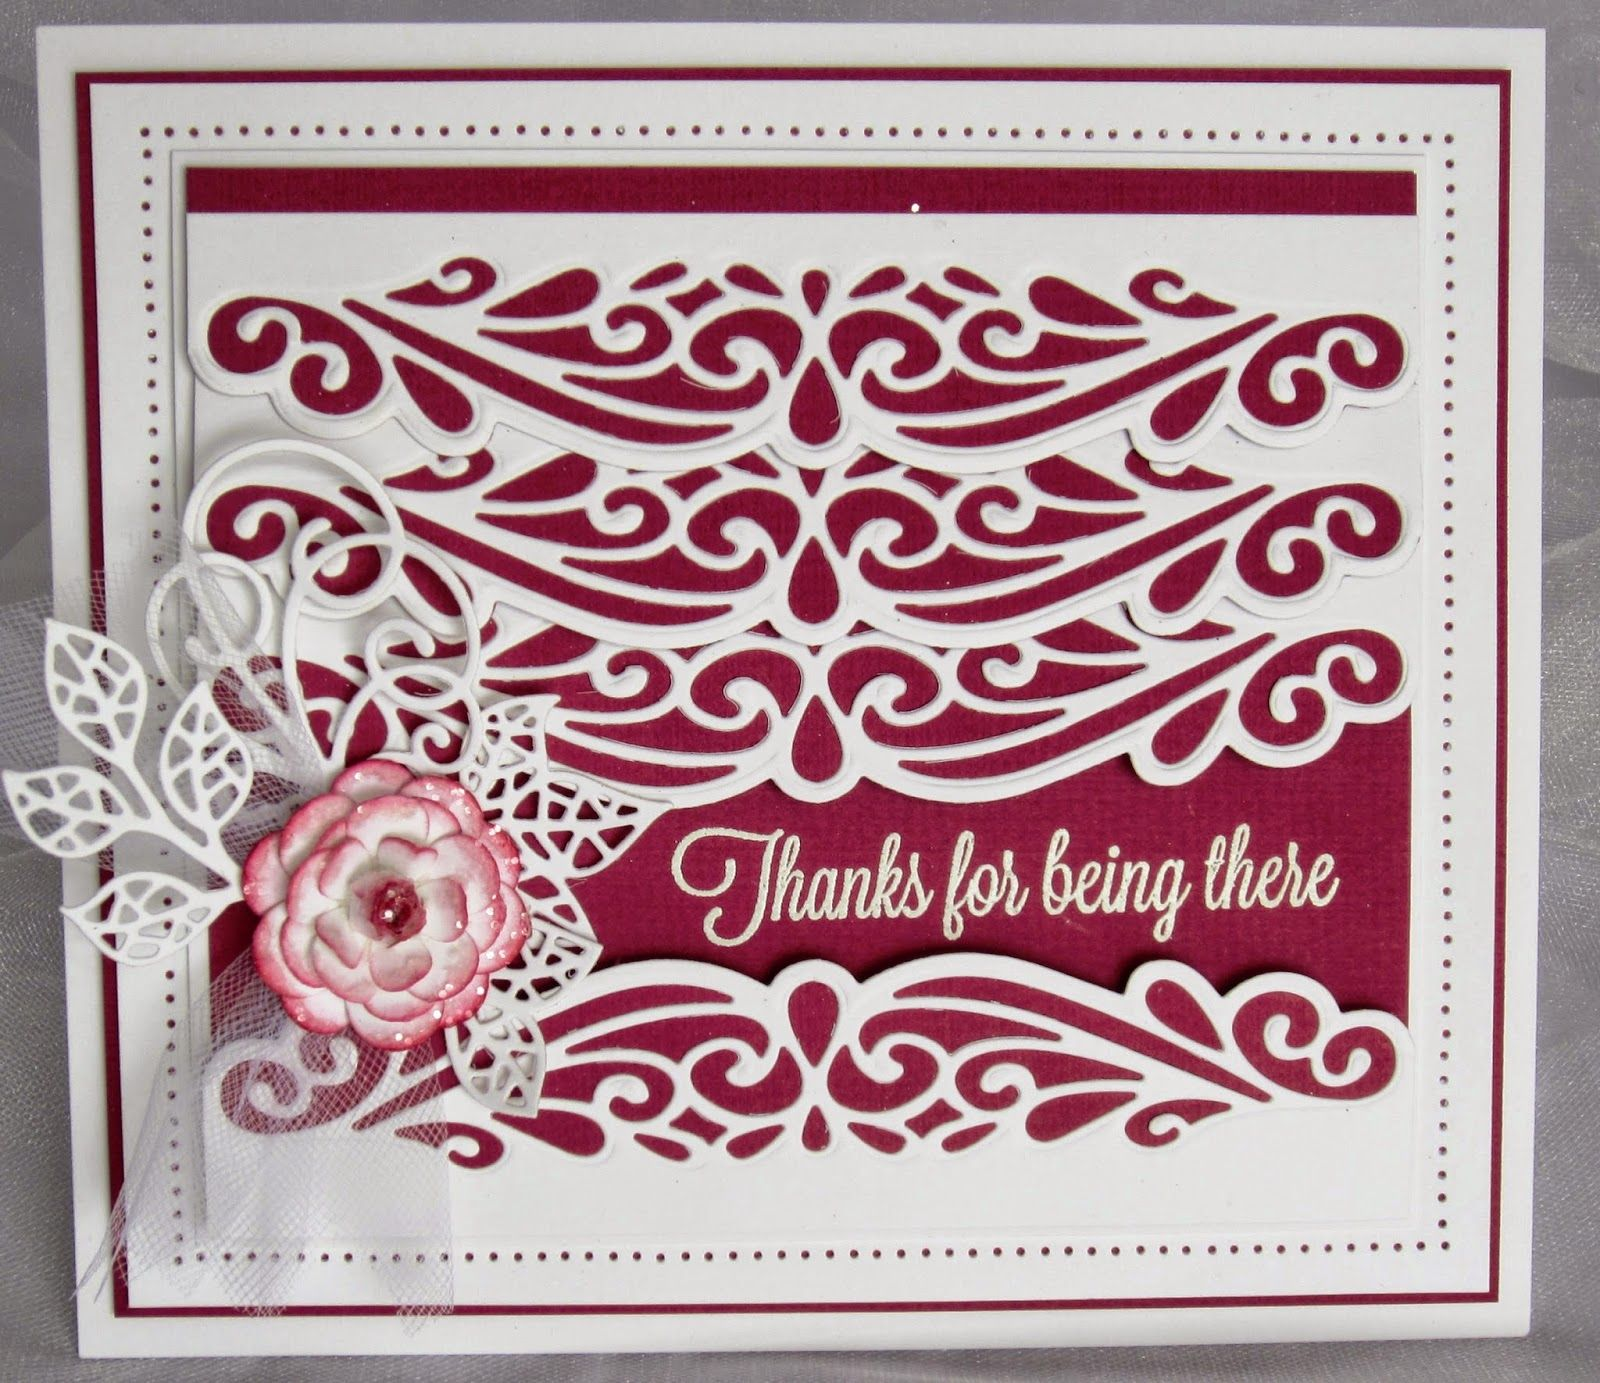 PartiCraft (Participate In Craft): Finishing Touches Collection Camellia Complete Petal die set